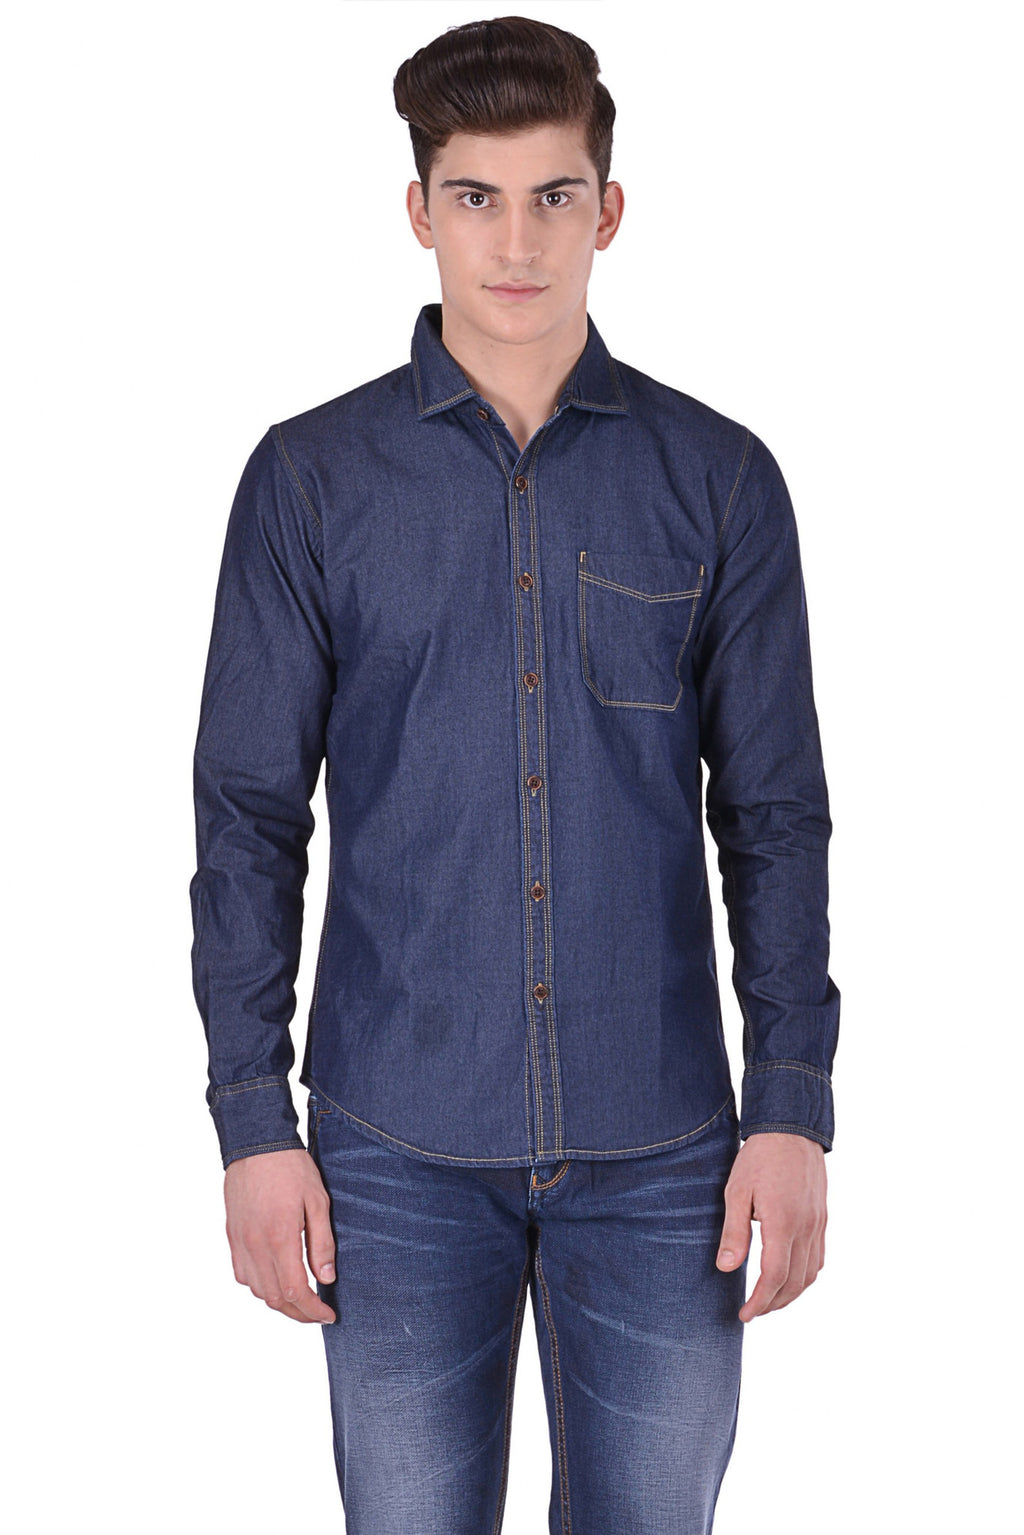 Hoffmen Men's Solid Casual Blue Denim Shirt DMA462 09